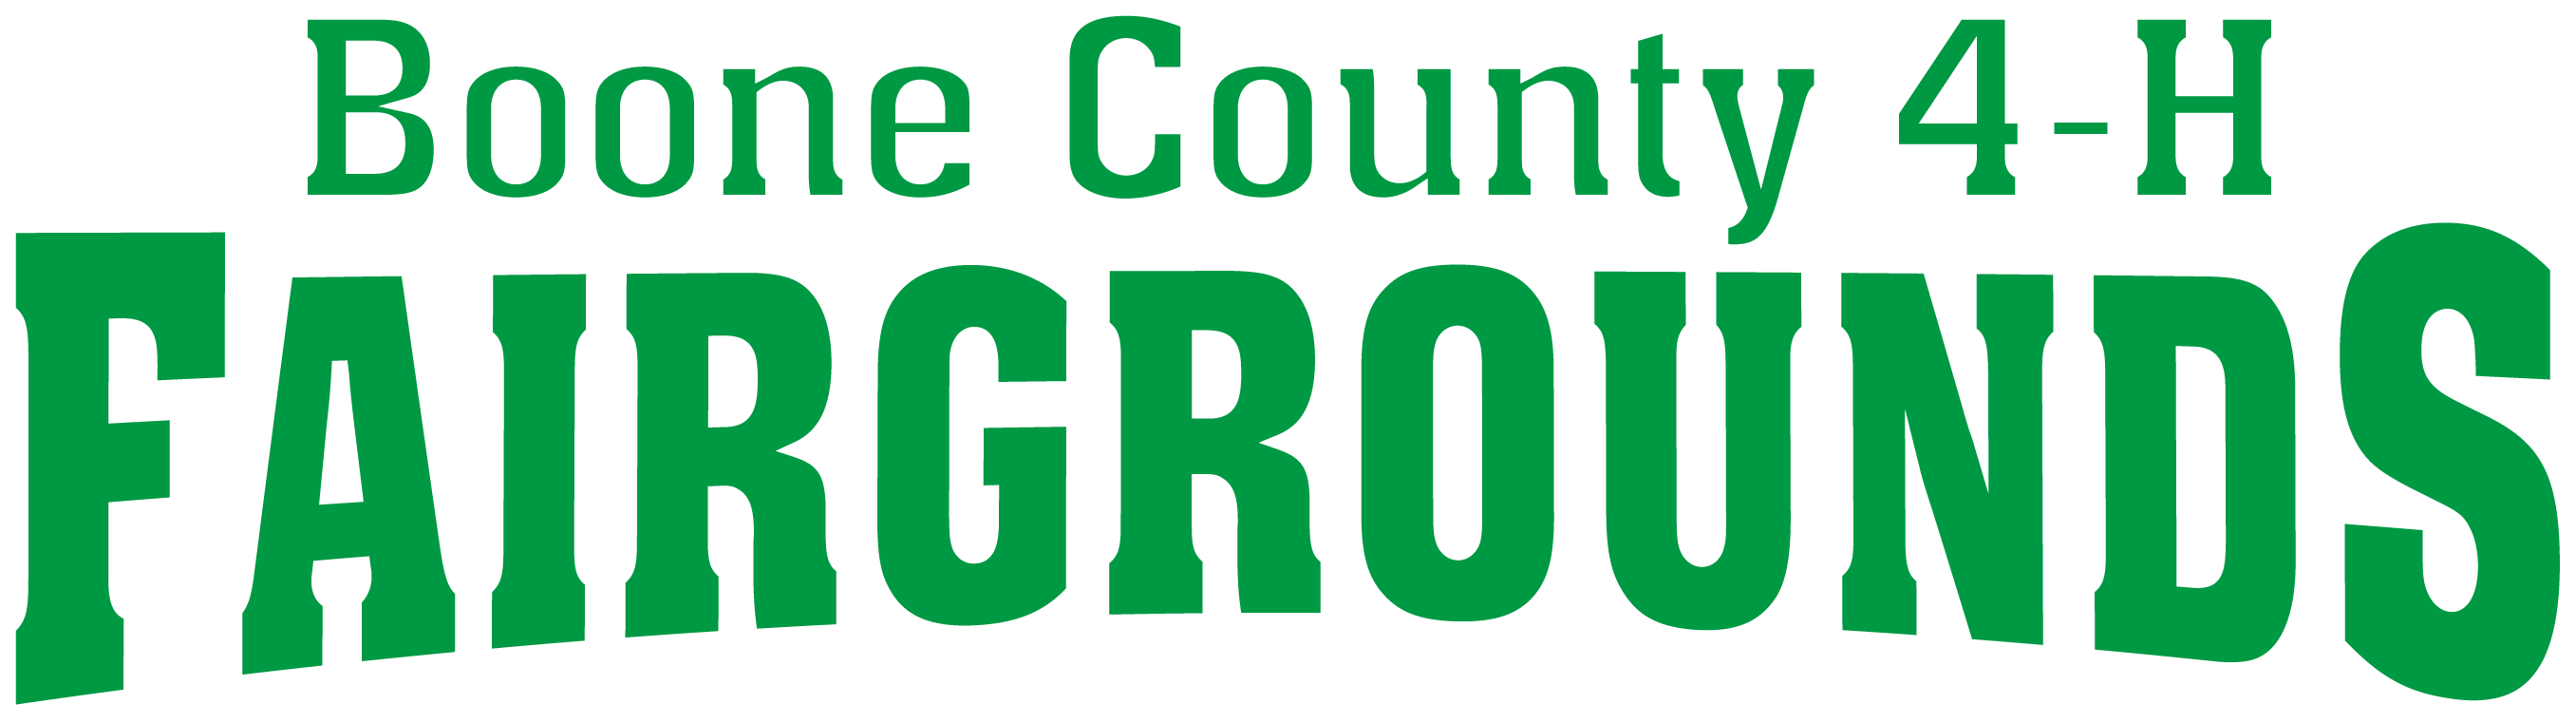 Boone County 4-H Fairgrounds